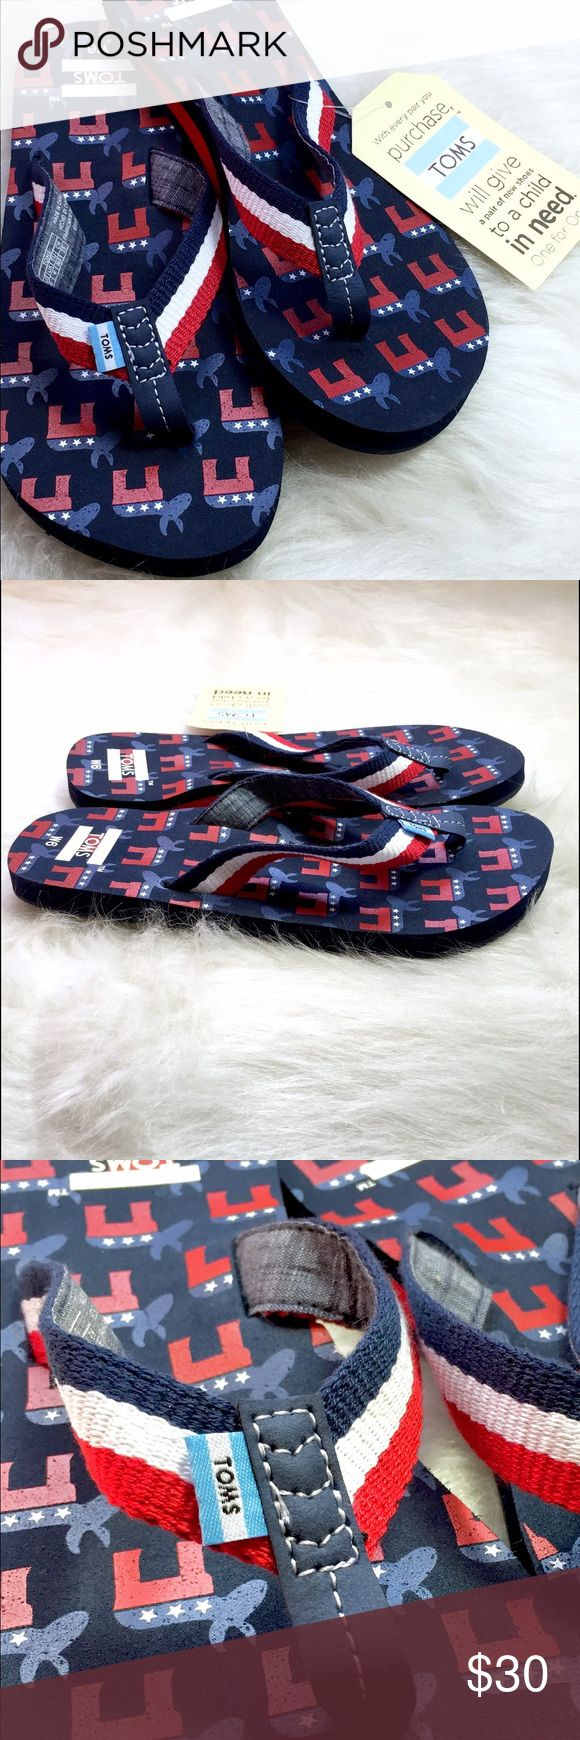 🇺🇸 TOMS DEMOCRATIC DONKEY flip flops / sandals! HURRY & GRAB FOR NOV 8th! Stroll into the poles with these easy-breezy TOMS Election Day flip flops. No need to be dressed to the Nine's to exercise your rights. Feel confident as these USA red, white and blue kicks exude pride and freedom. (And you'll be one step ahead for those July 4th pool party barbecues.) Wear with anything. I mean ANYTHING! Whatever gets you to the polls, Poshers! Regardless of party... VOTE, VOTE, VOTE! Flaunt that…